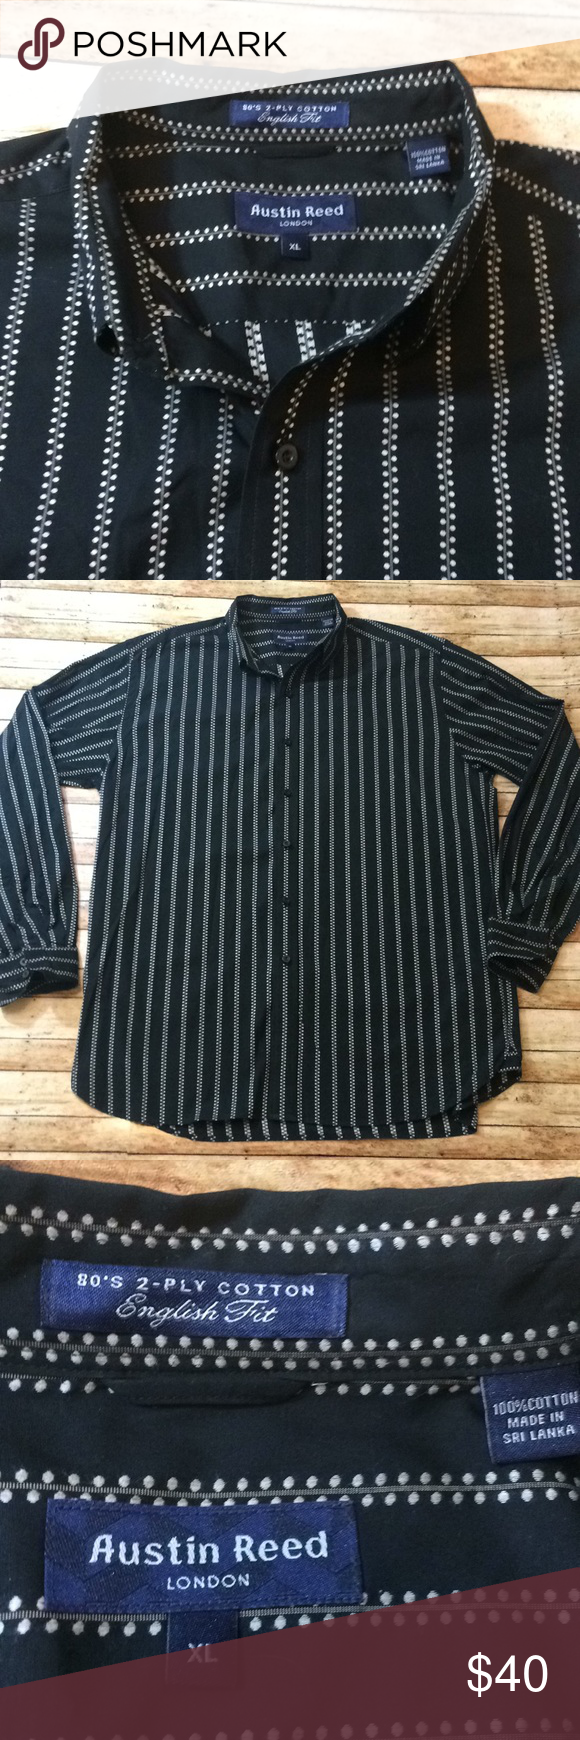 Austin Reed London Button Down Size Xl Great Used Condition Size Xl Austin Reed Shirts Clothes Design Austin Reed Fashion Design